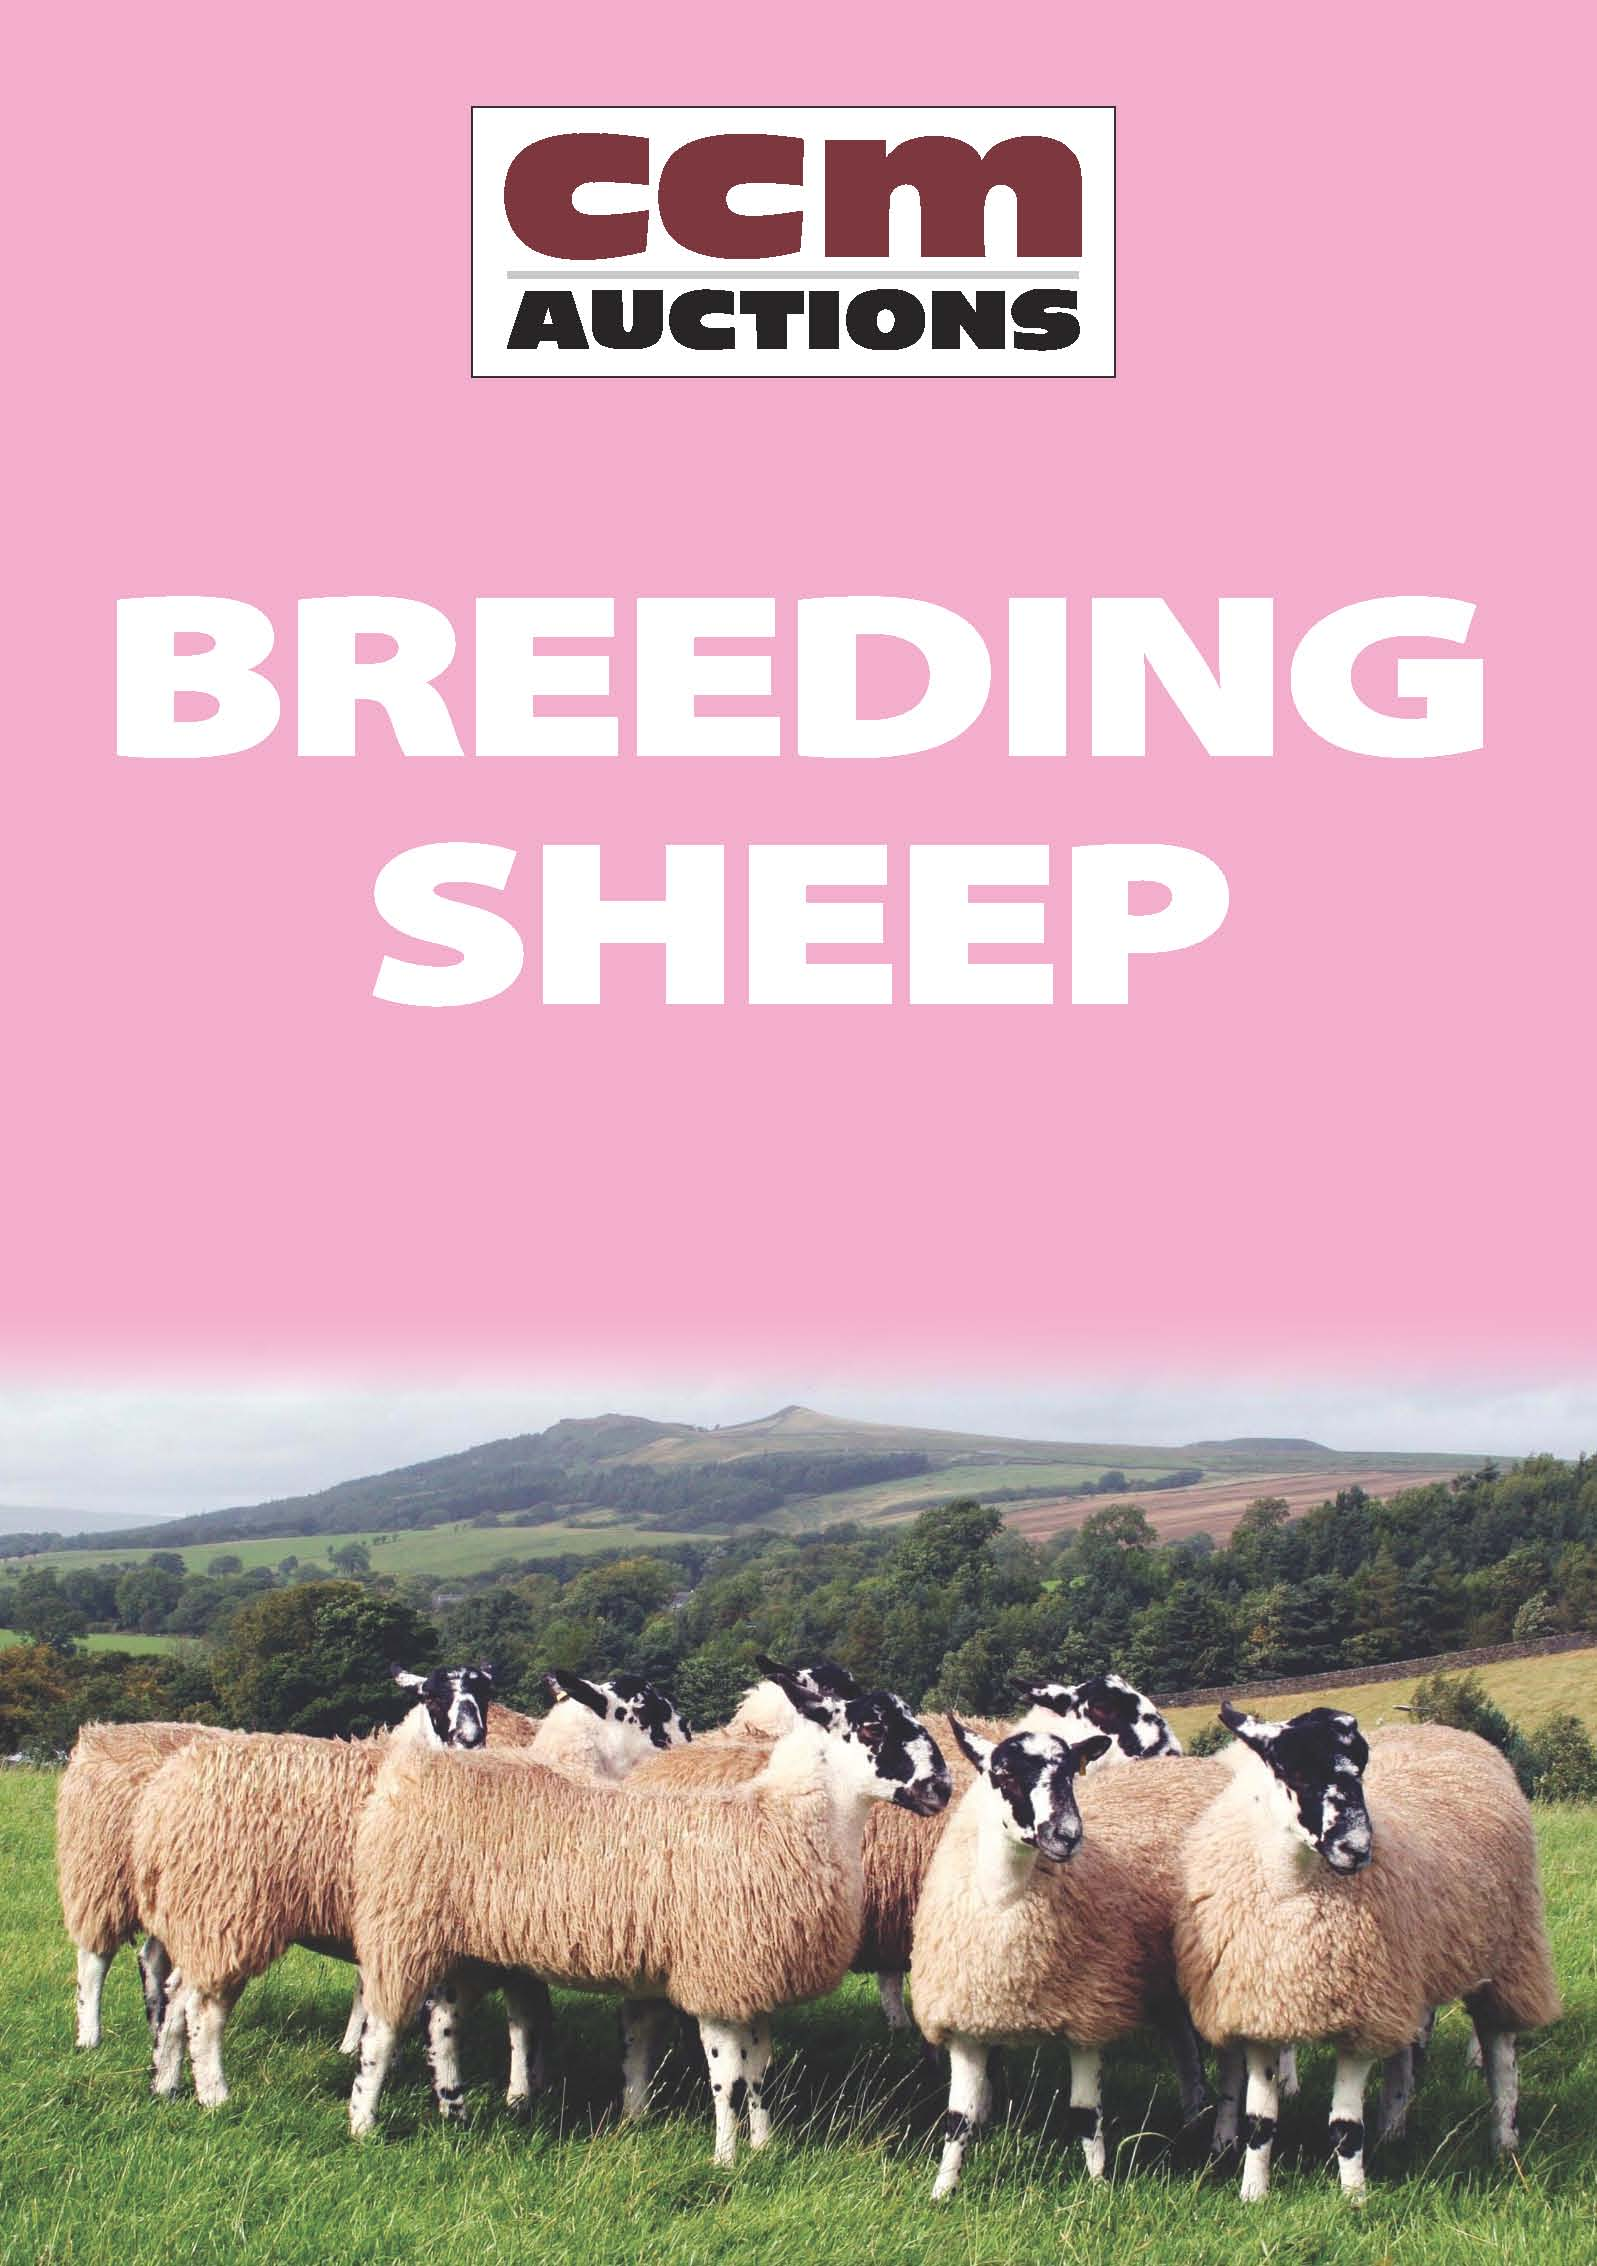 BREEDING SHEEP - TUESDAY 21ST OCTOBER